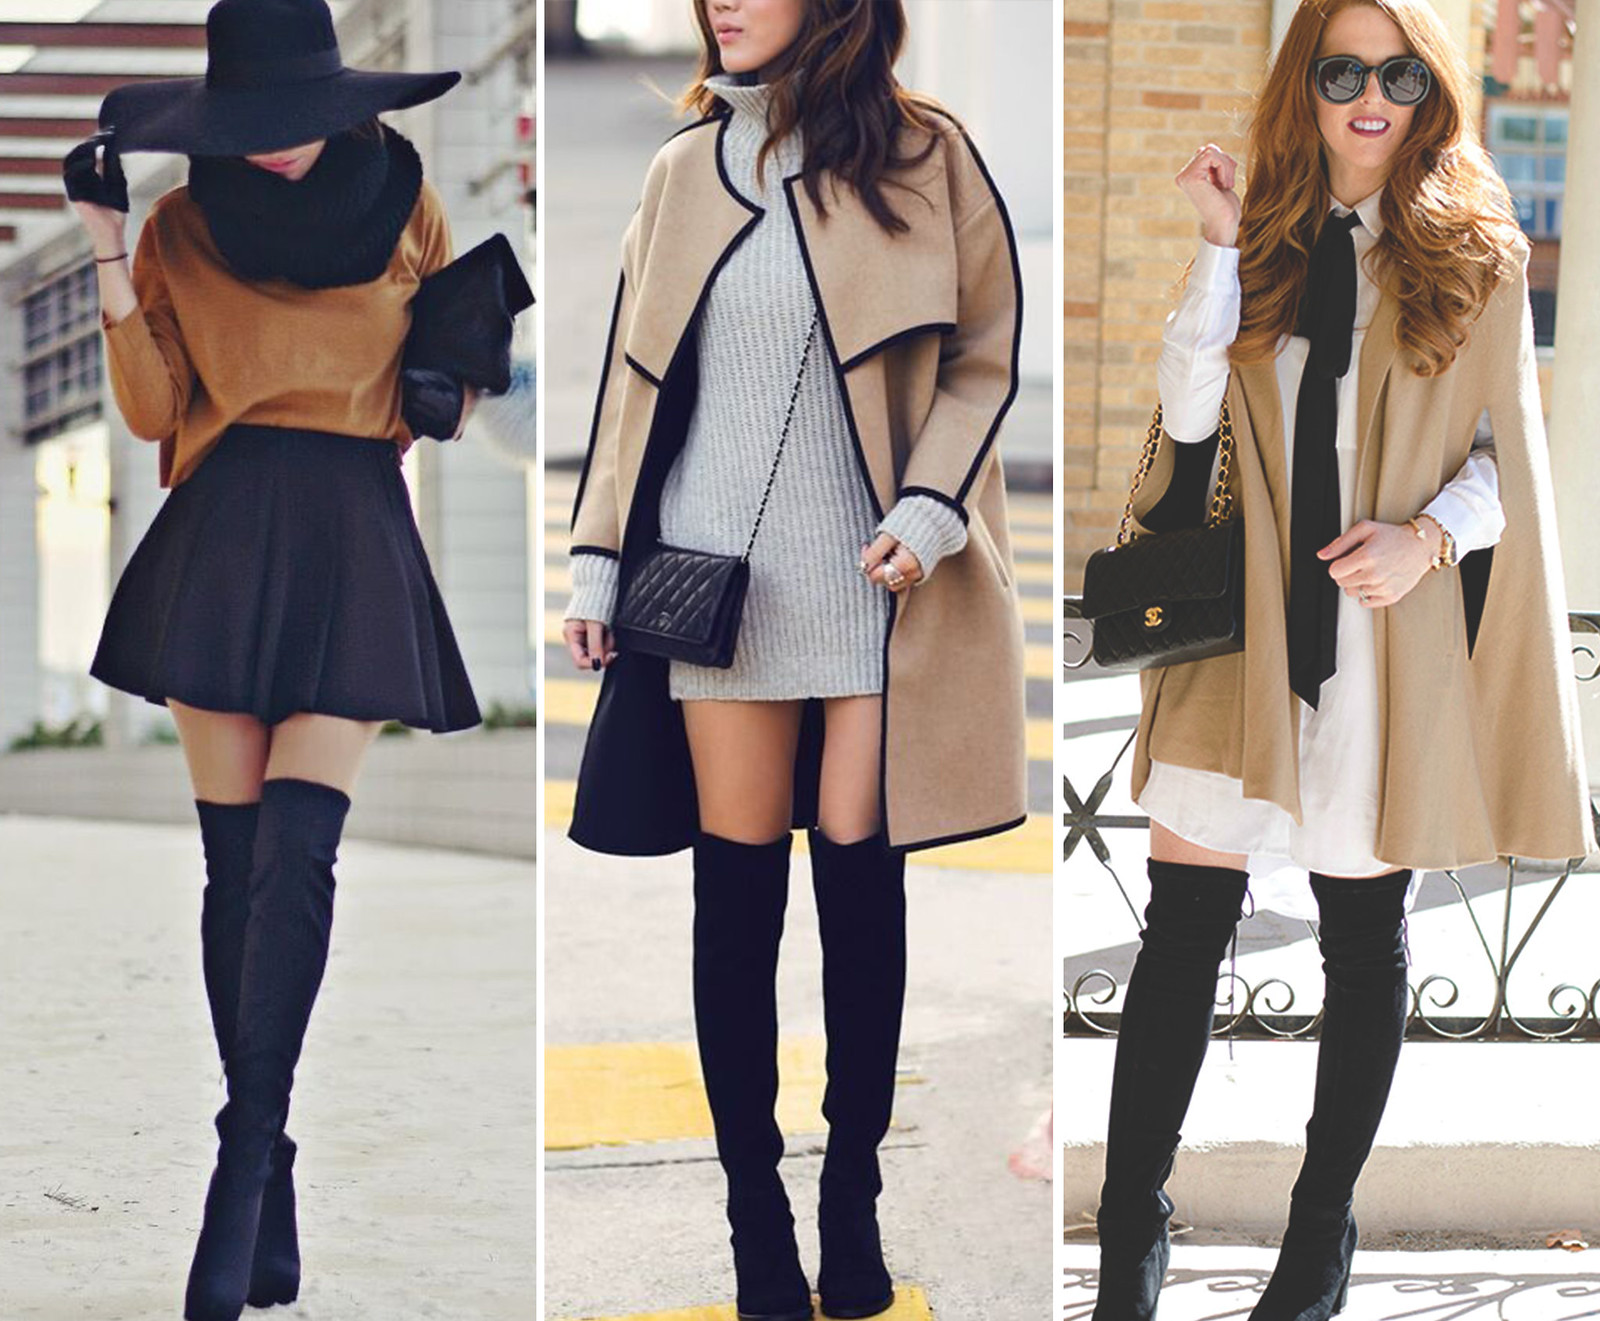 f0a4170a5c16 Over the knee boots trend inspiration by Fashion Artista